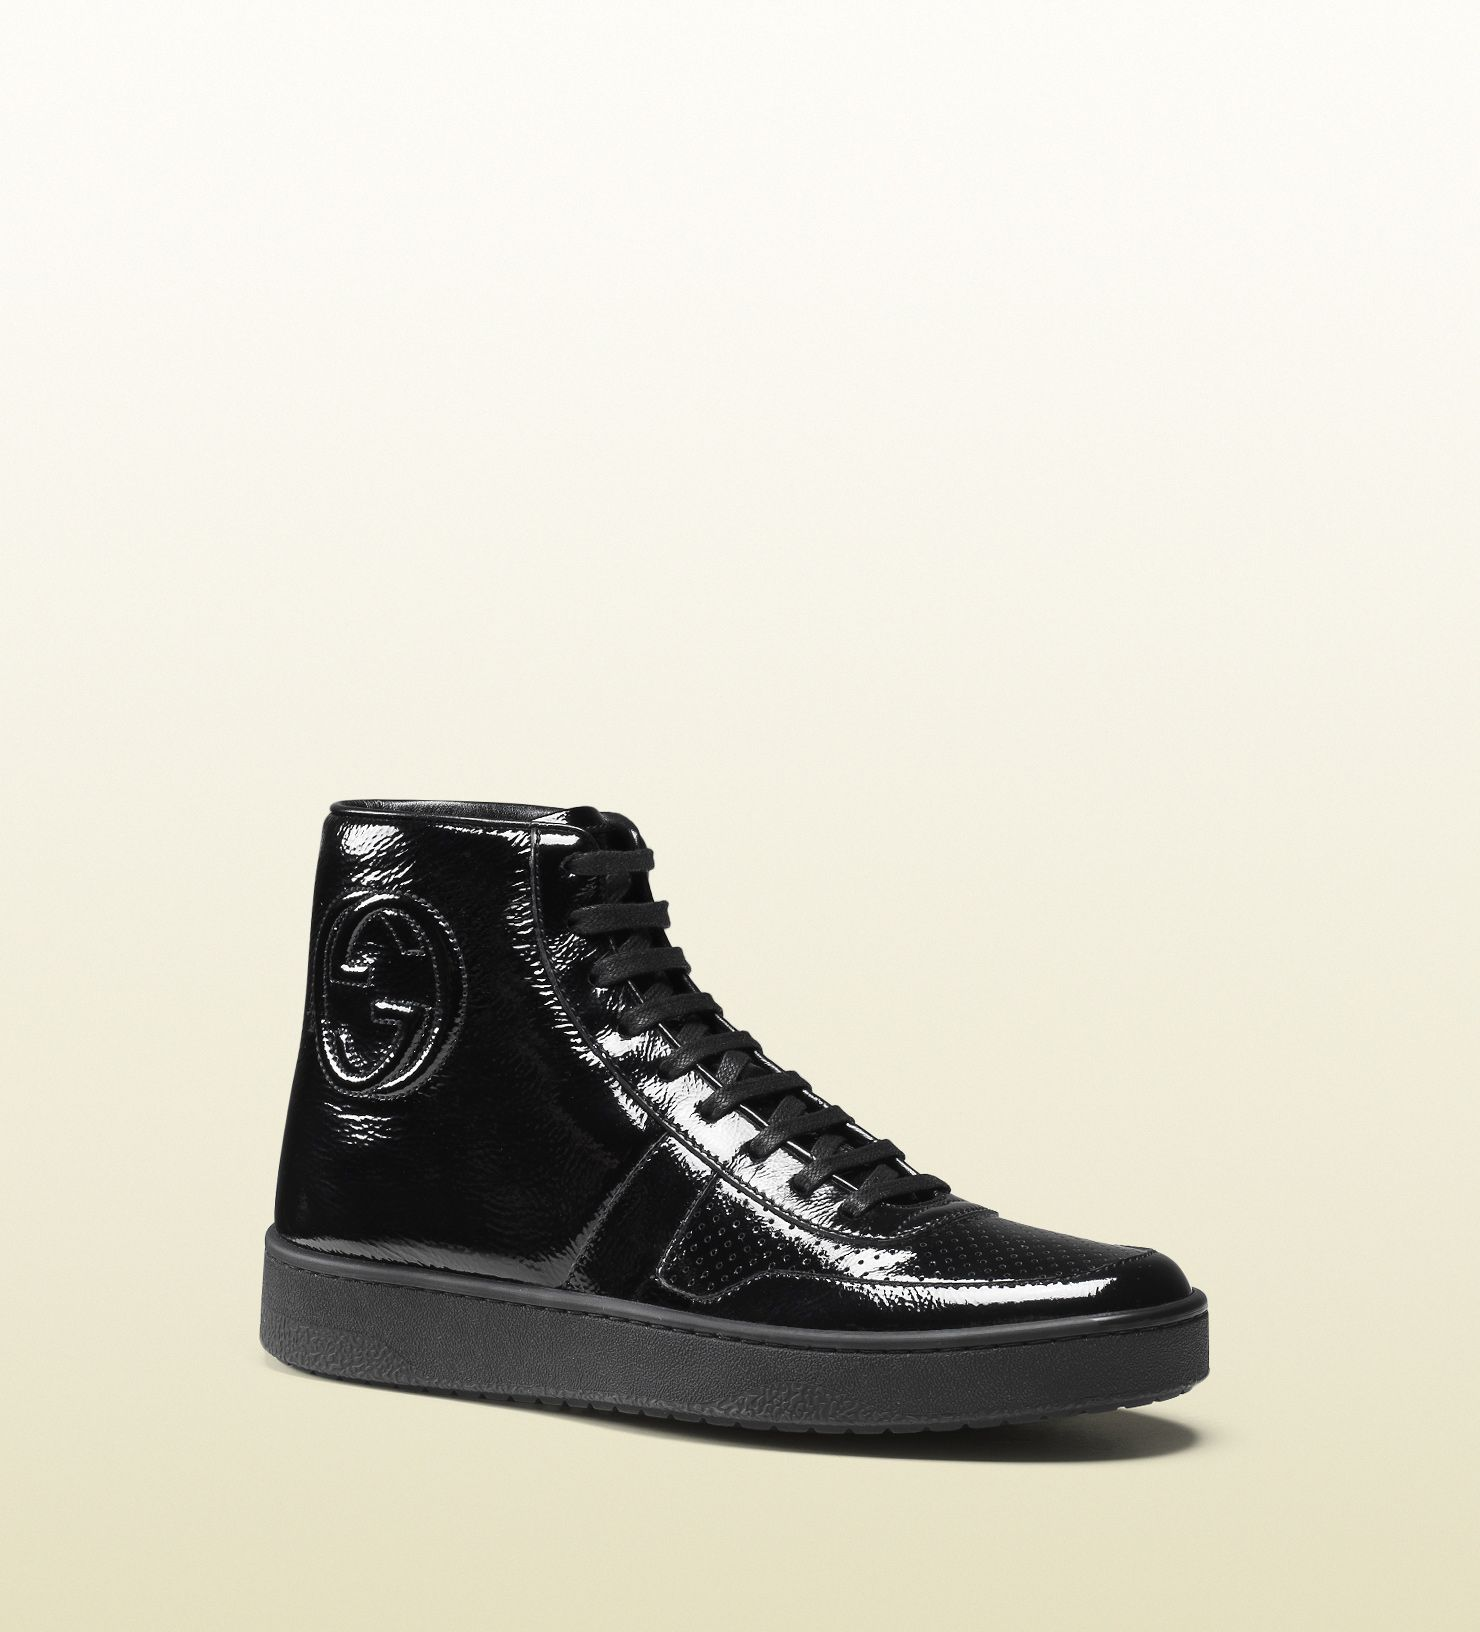 soft patent leather high-top sneaker